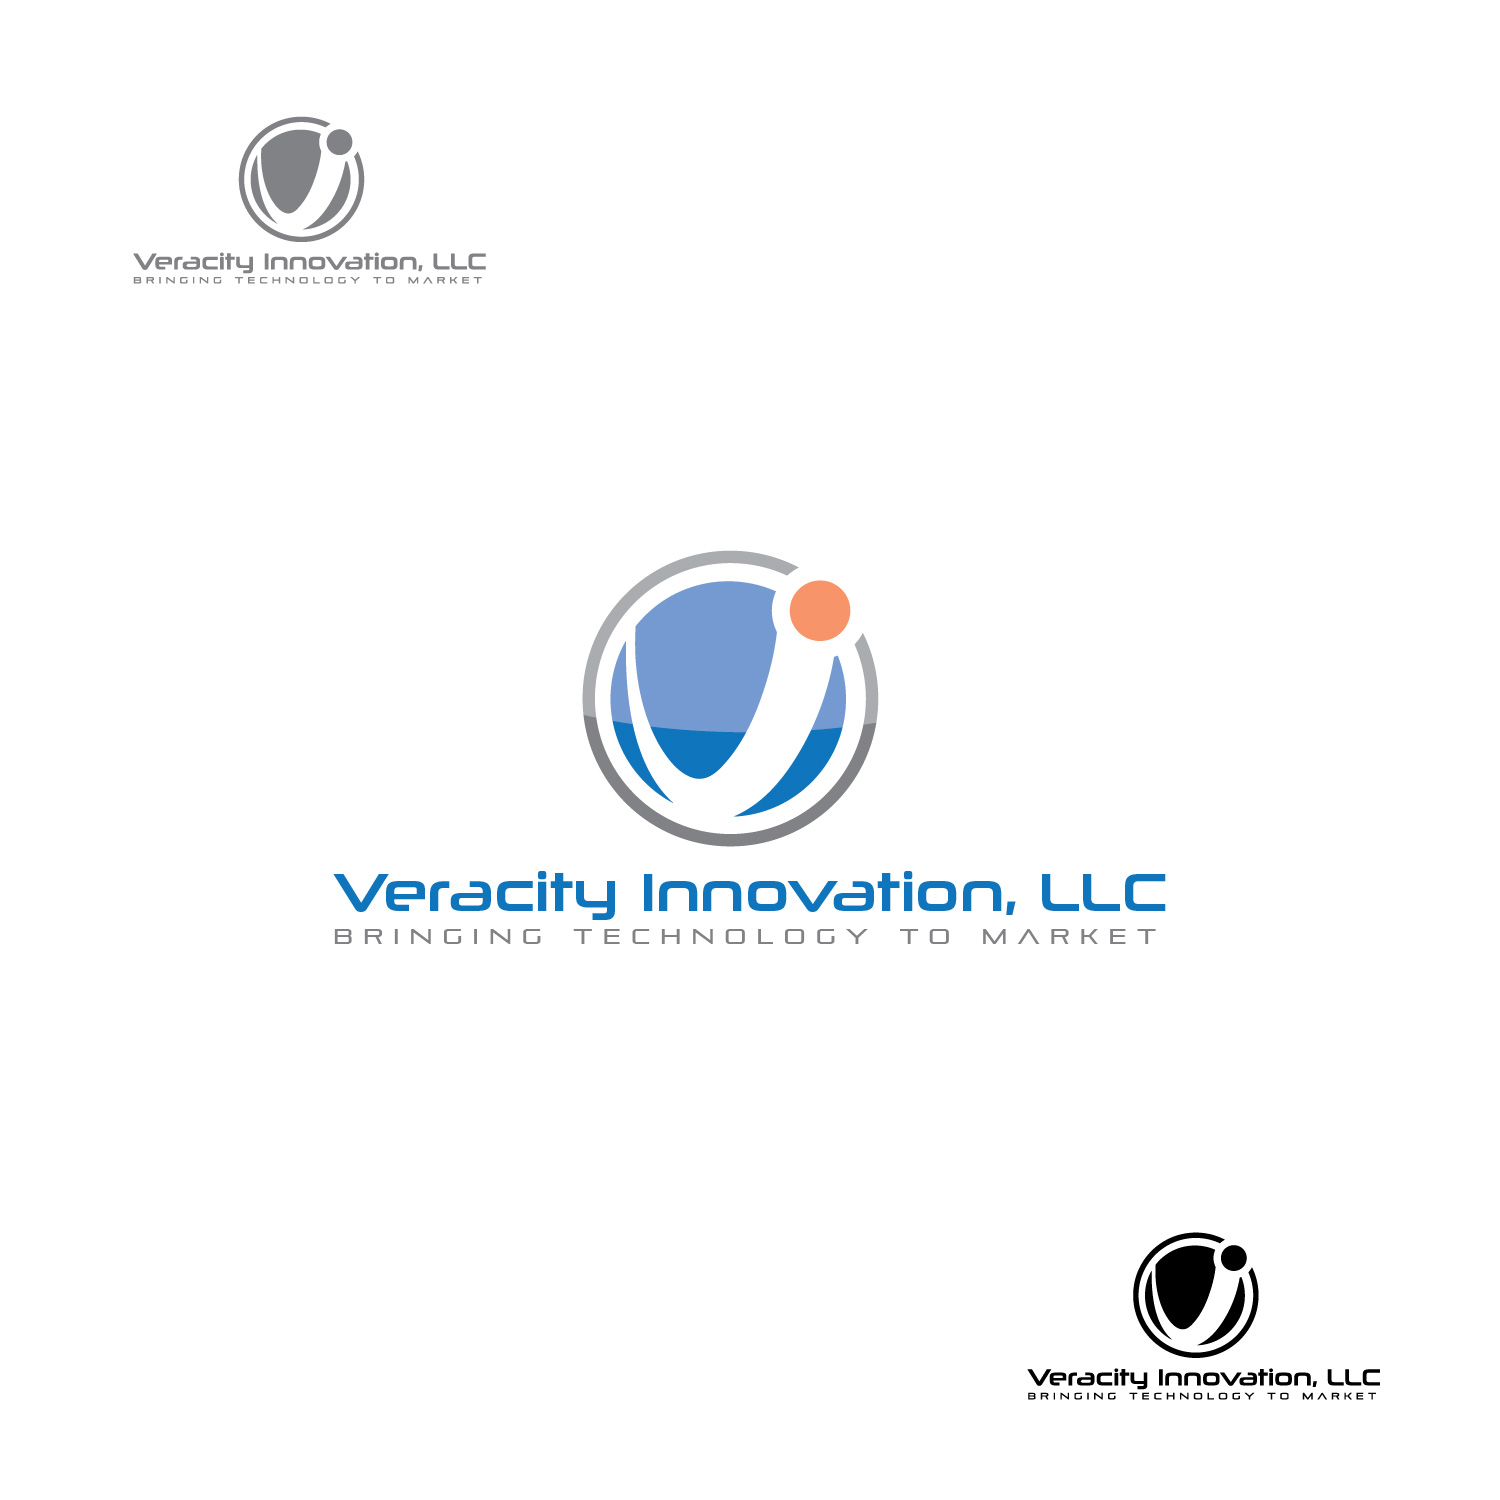 Logo Design by lagalag - Entry No. 322 in the Logo Design Contest Creative Logo Design for Veracity Innovation, LLC.